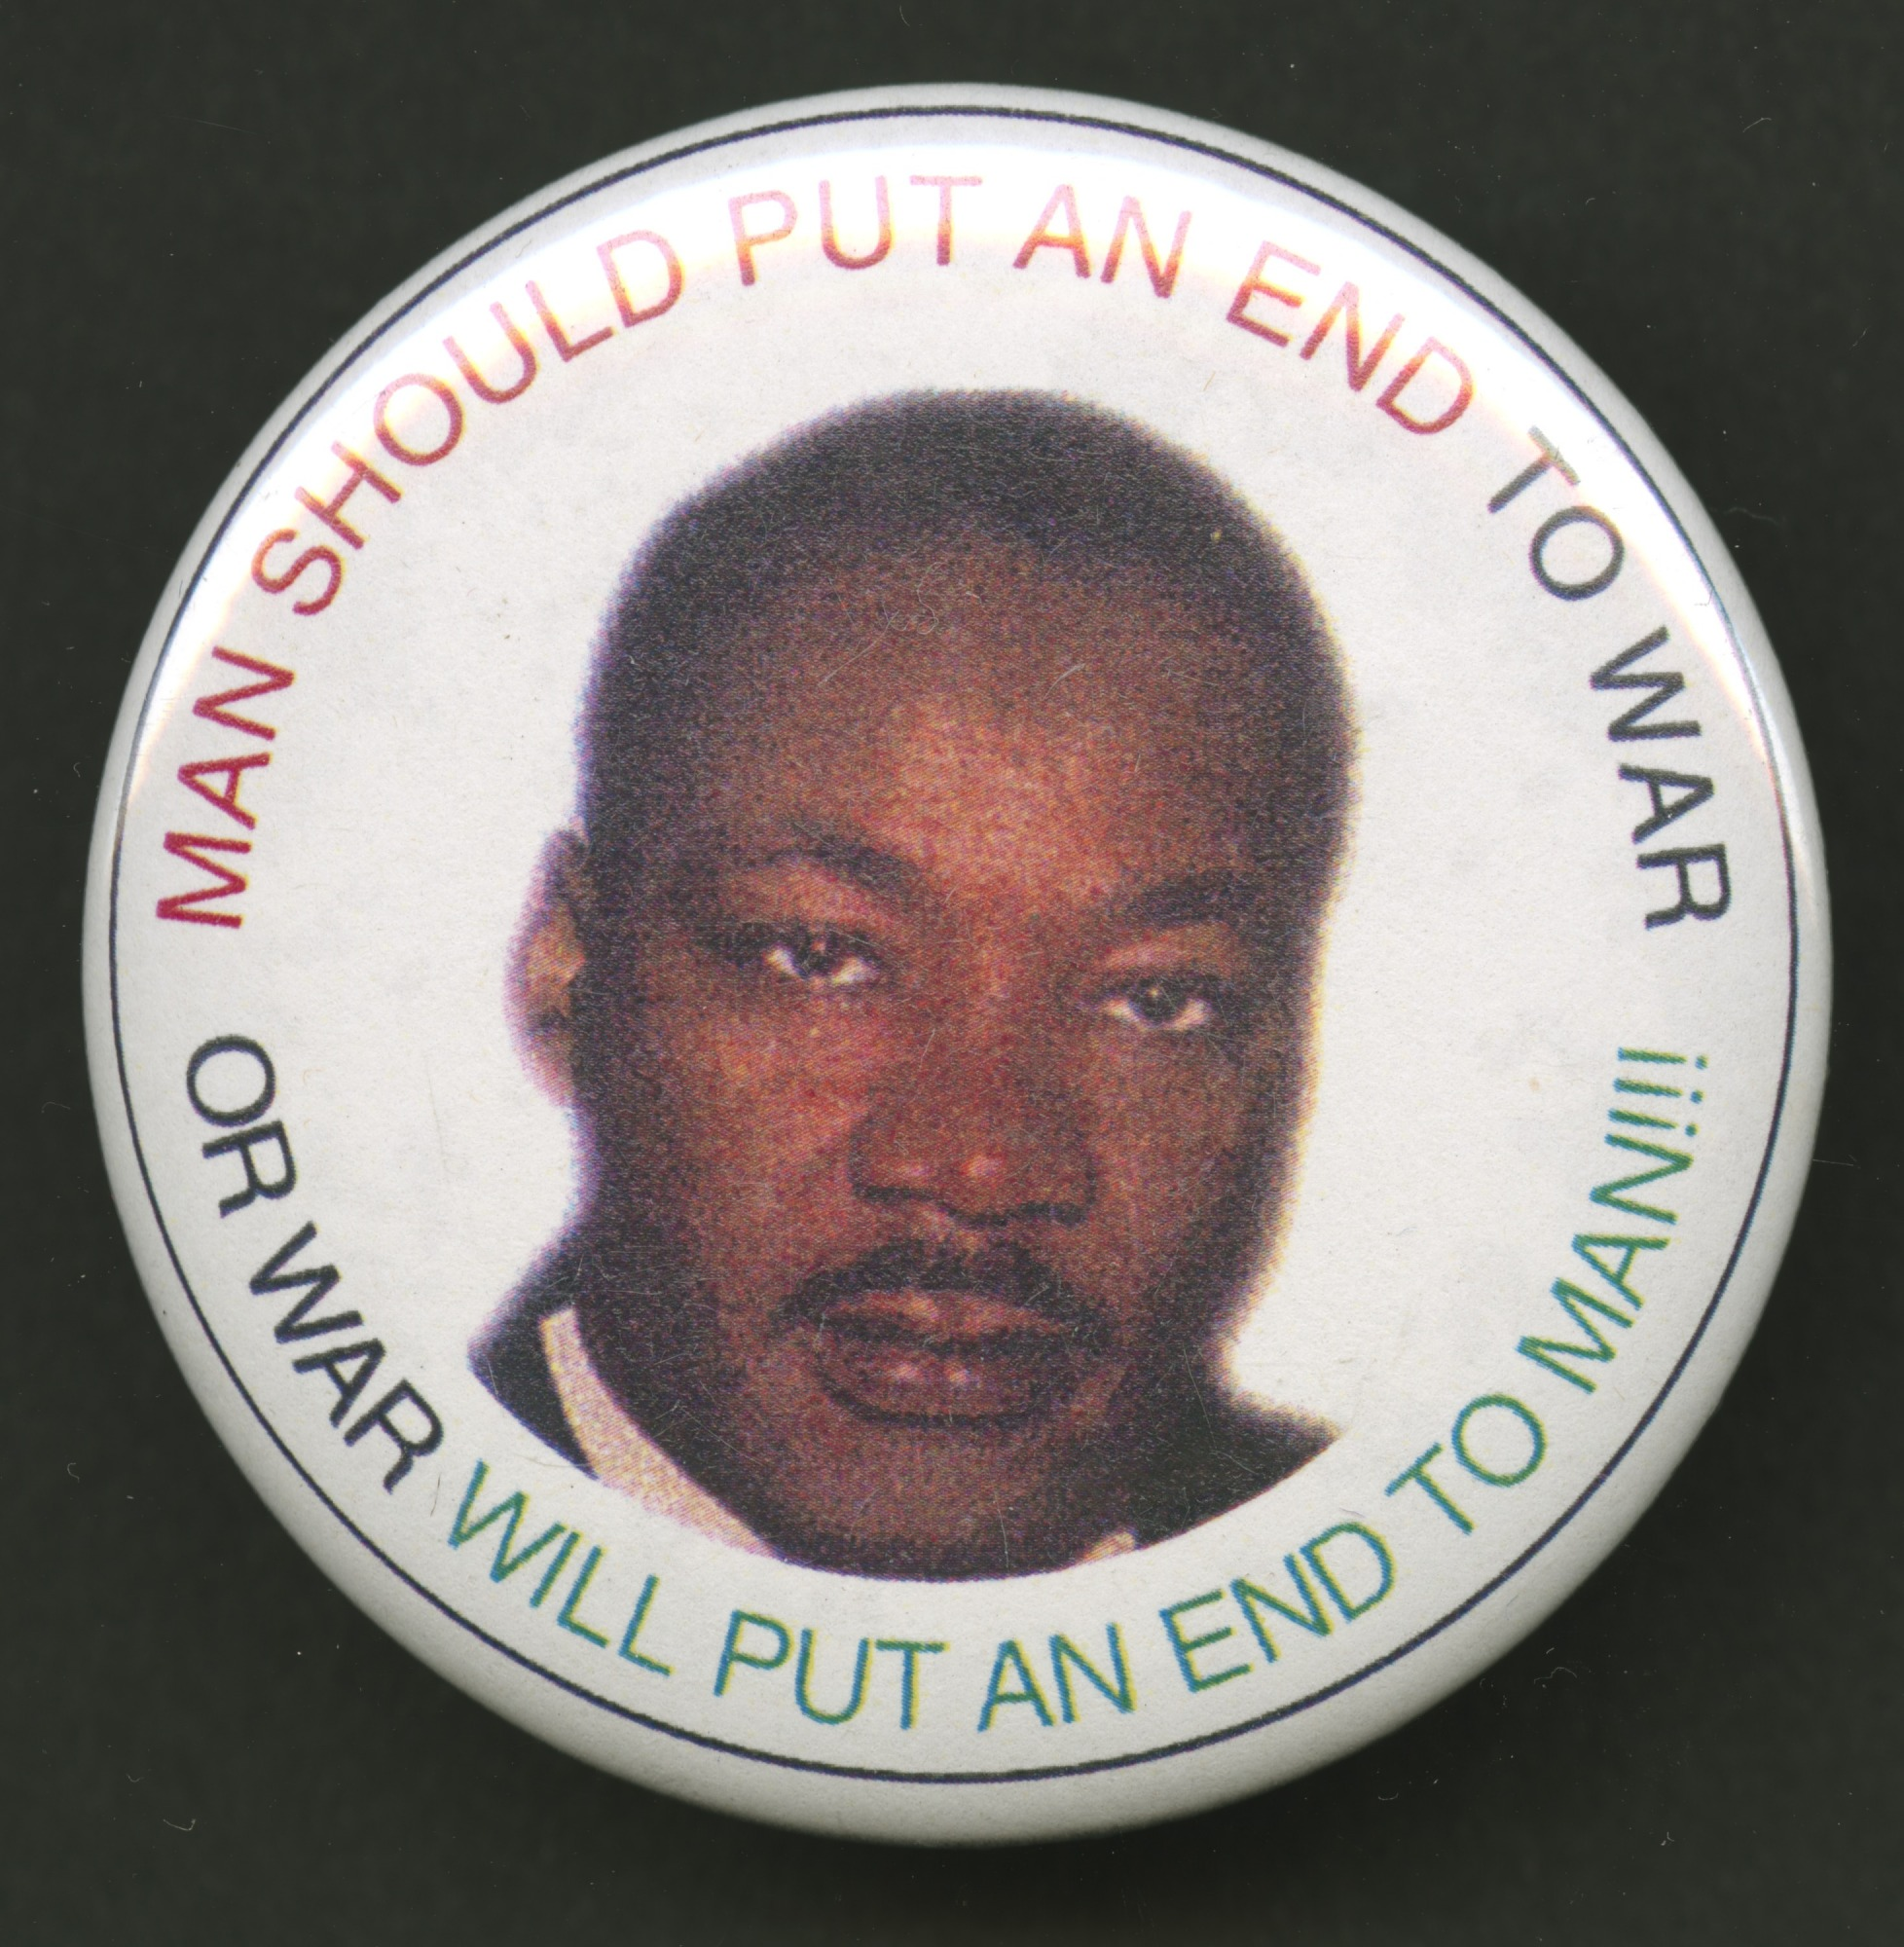 images for Pinback button featuring Martin Luther King Jr.